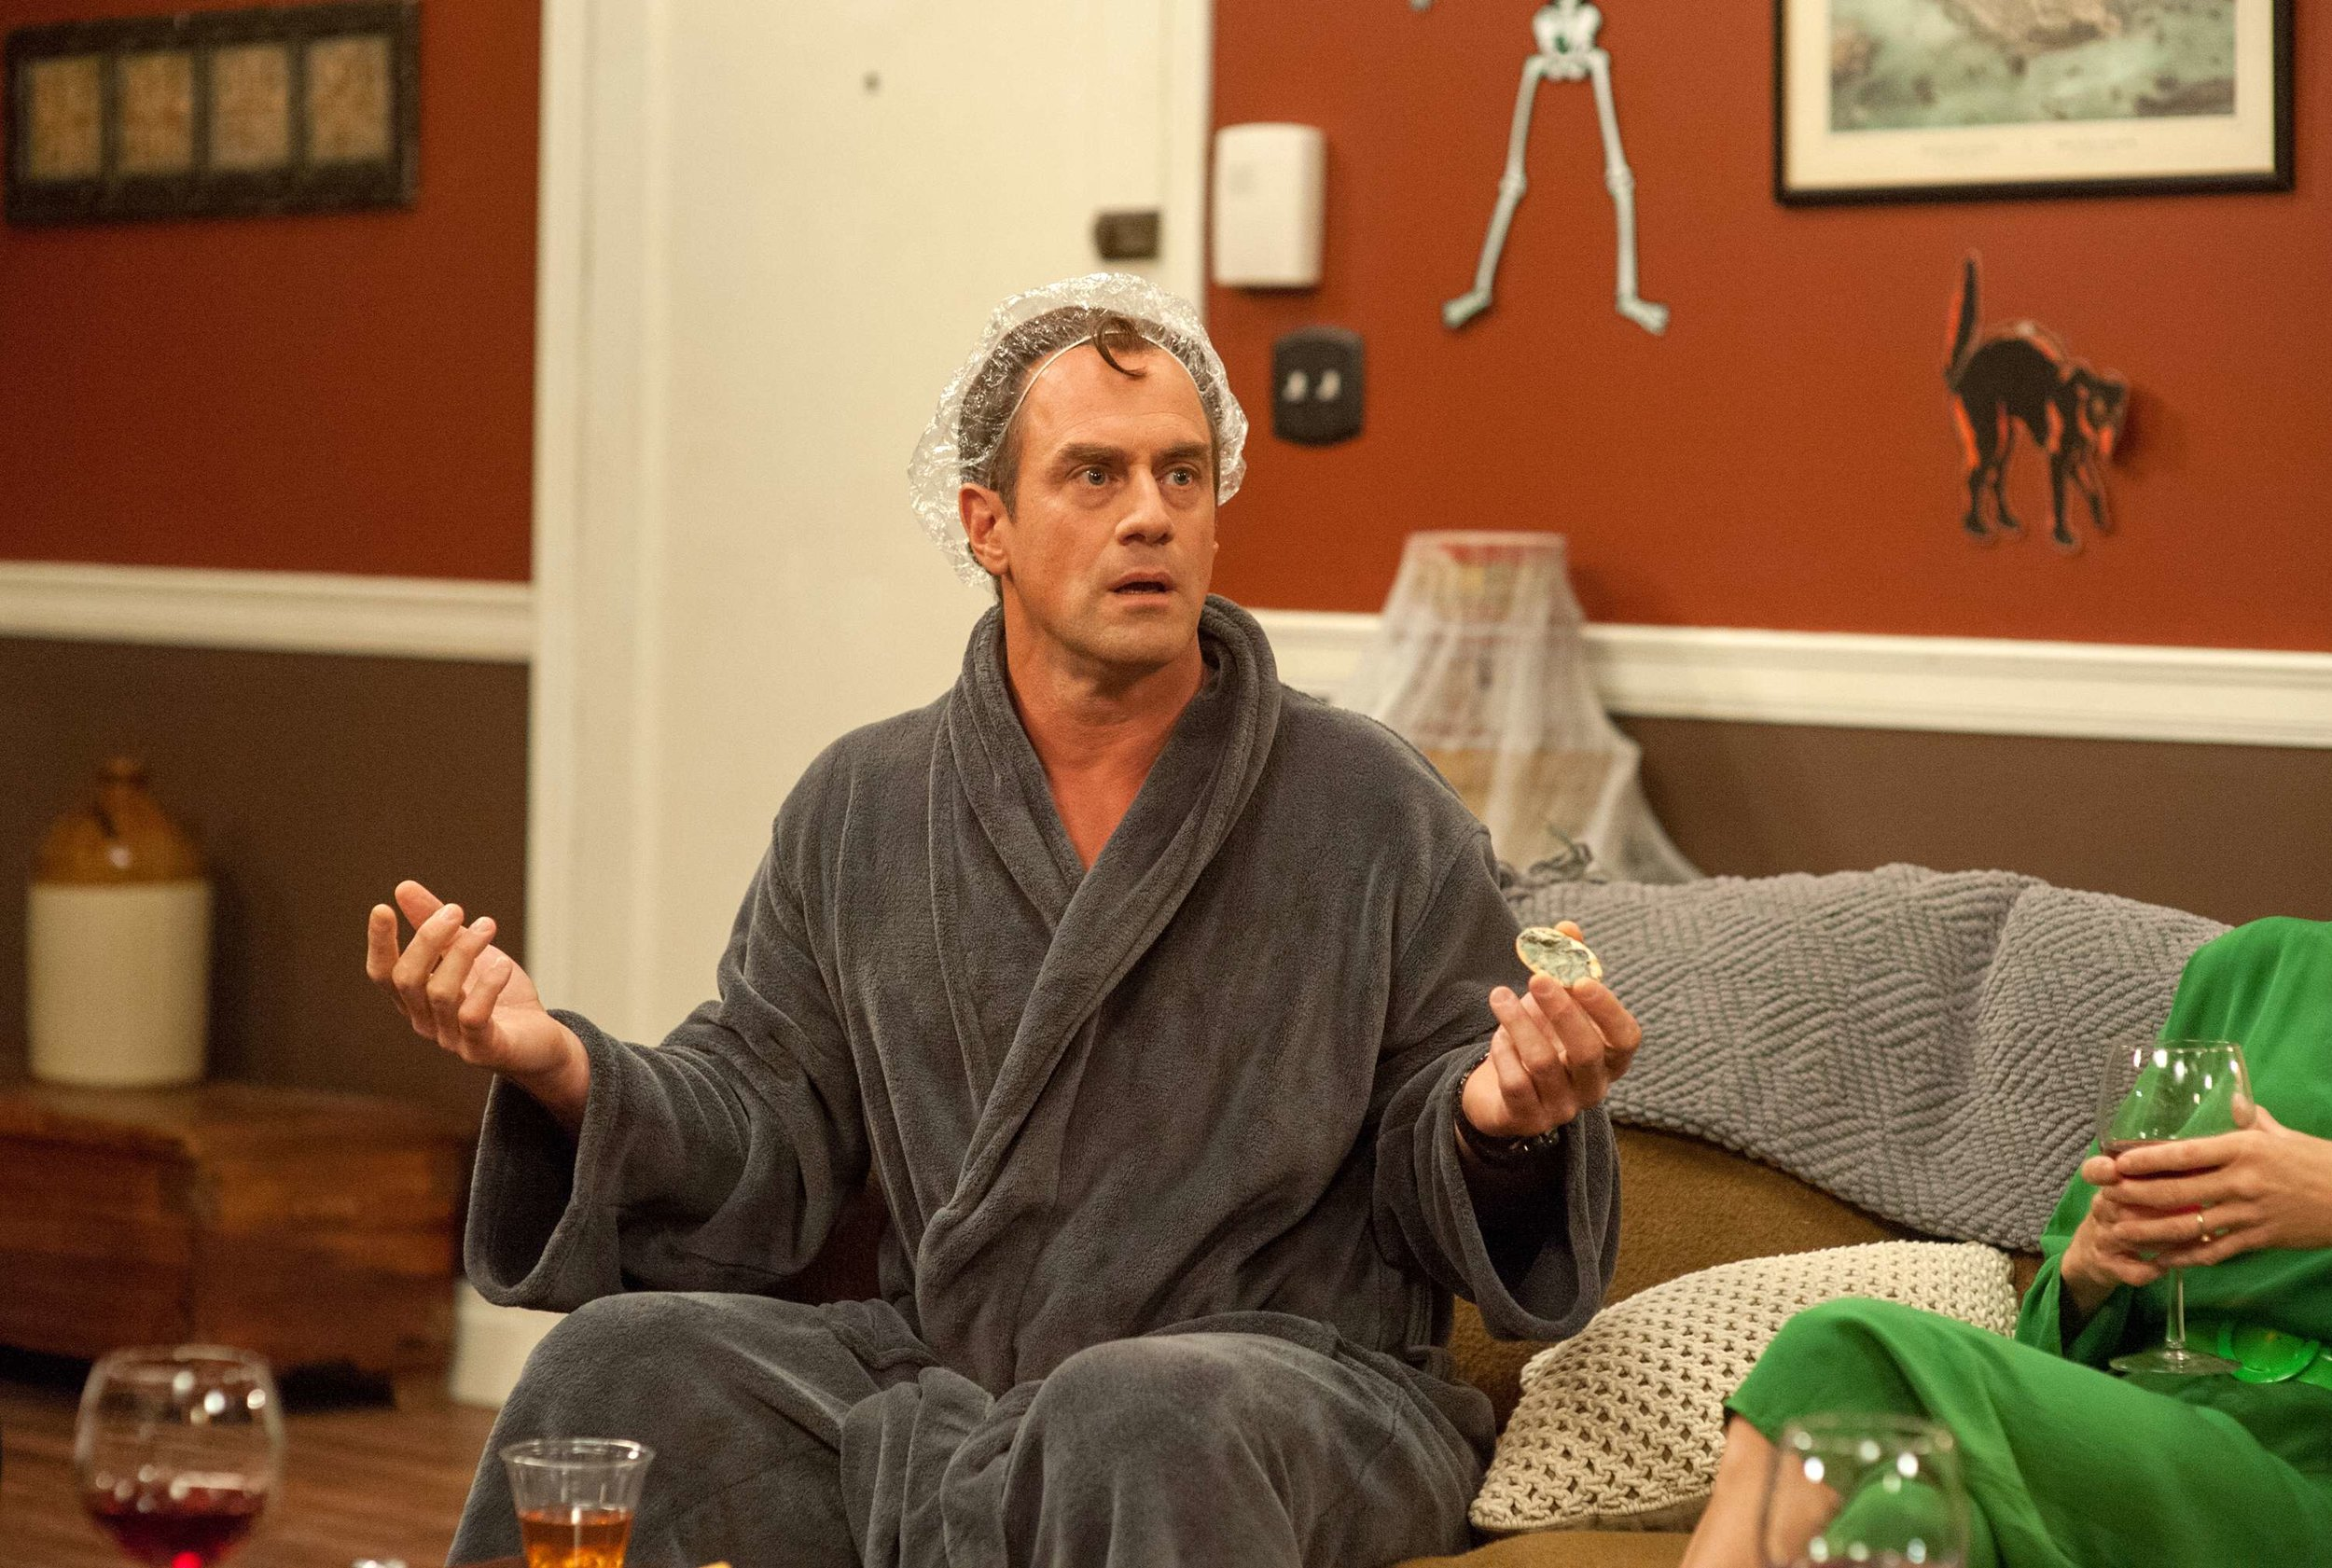 film_review_they_came_together-1.jpg